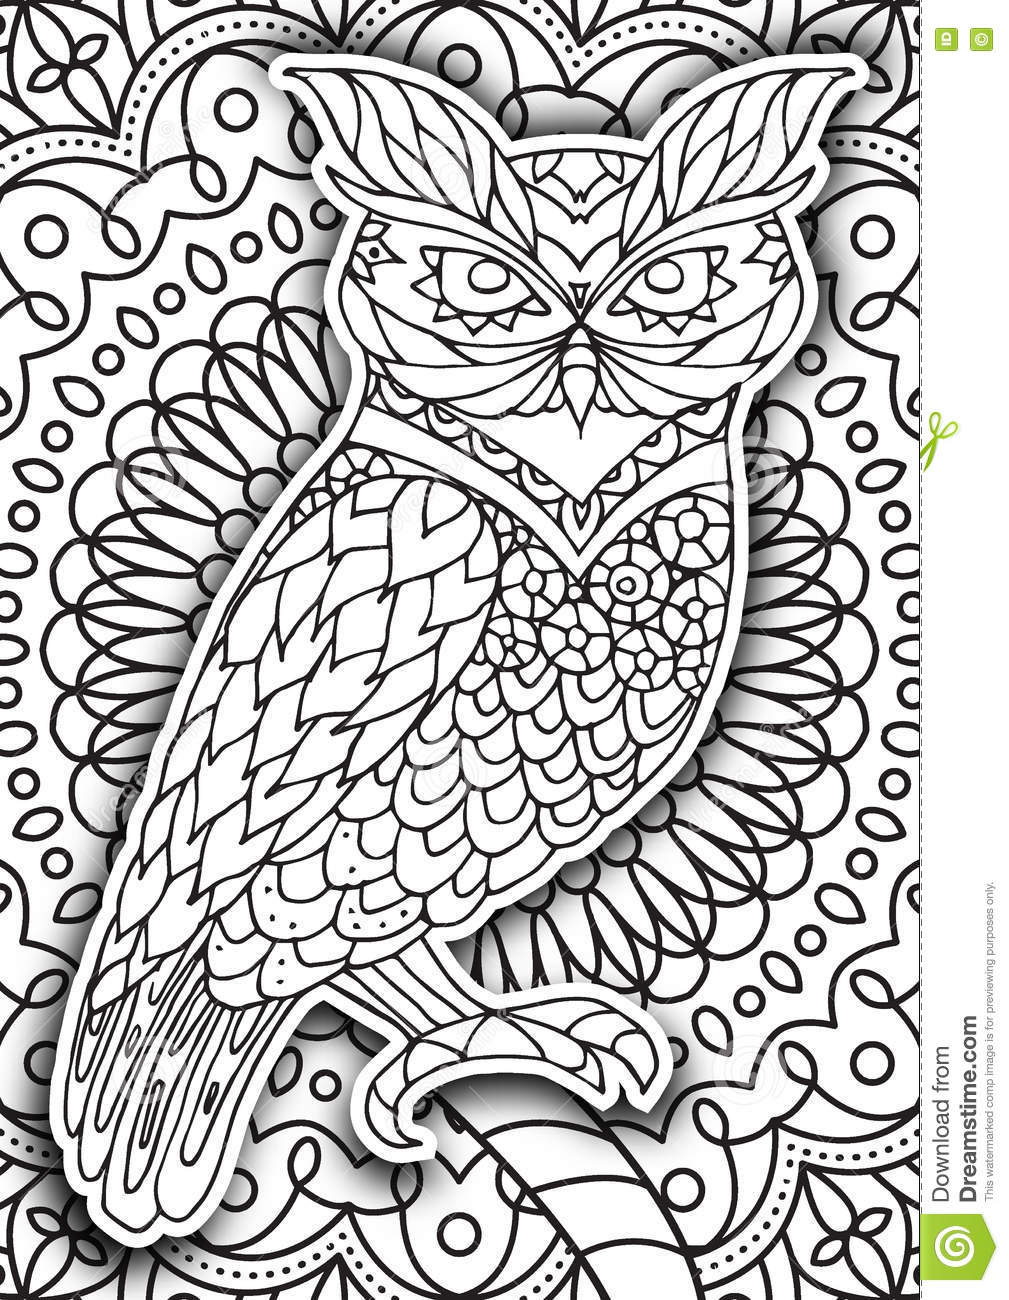 printable coloring book page for adults stock vector image 75627075